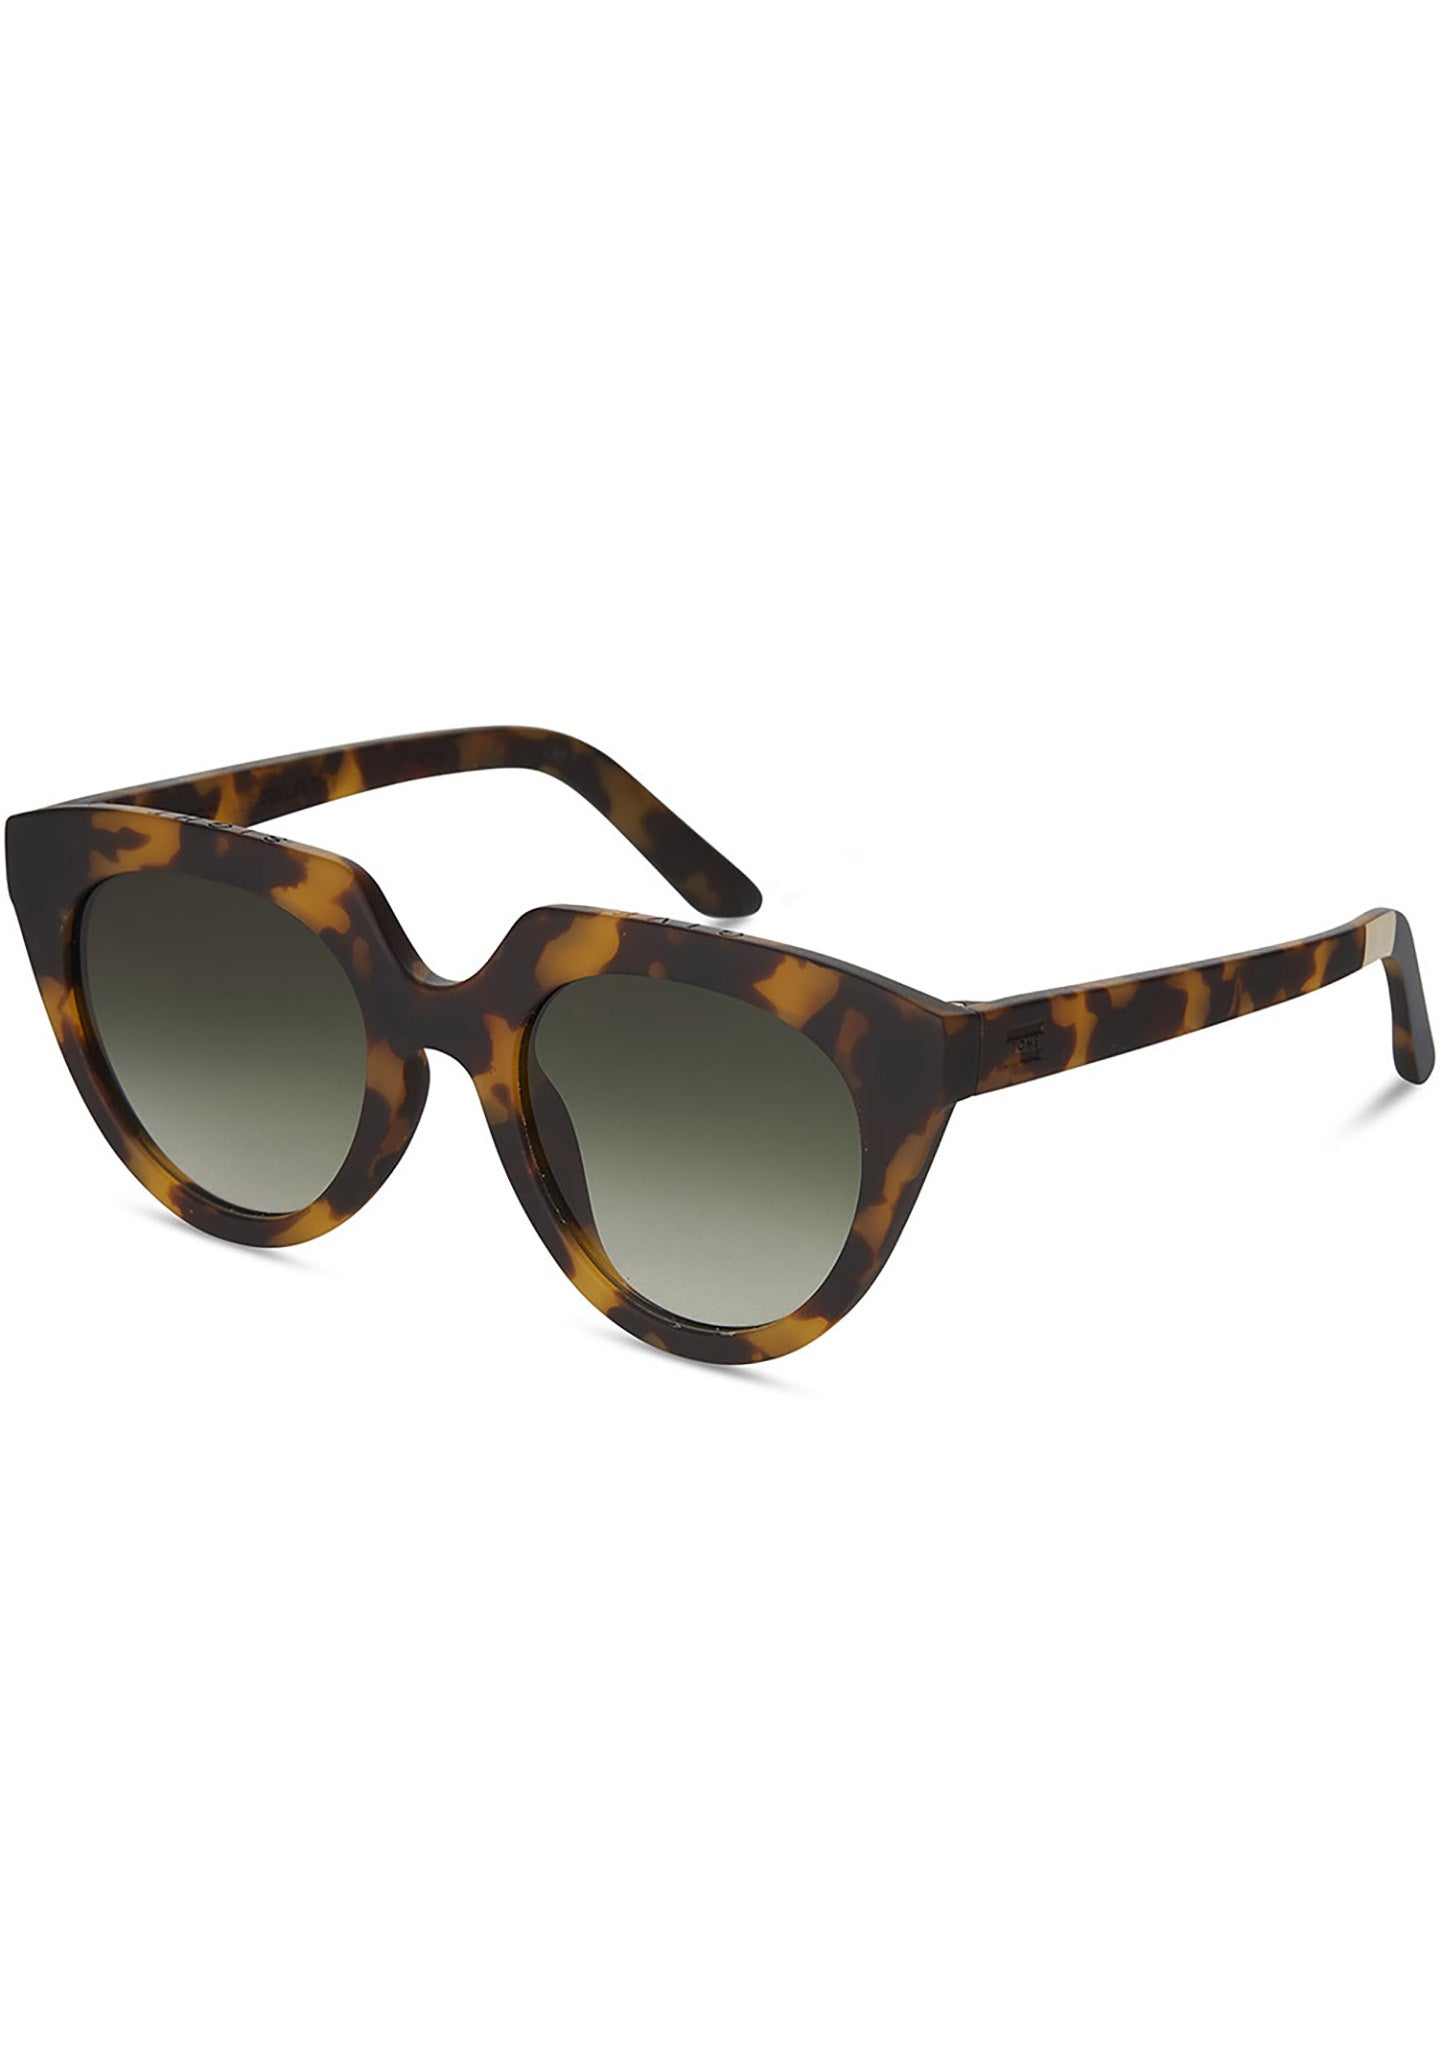 TRAVELER Lourdes Sunglasses in Matte Blonde Tortoise Polarized